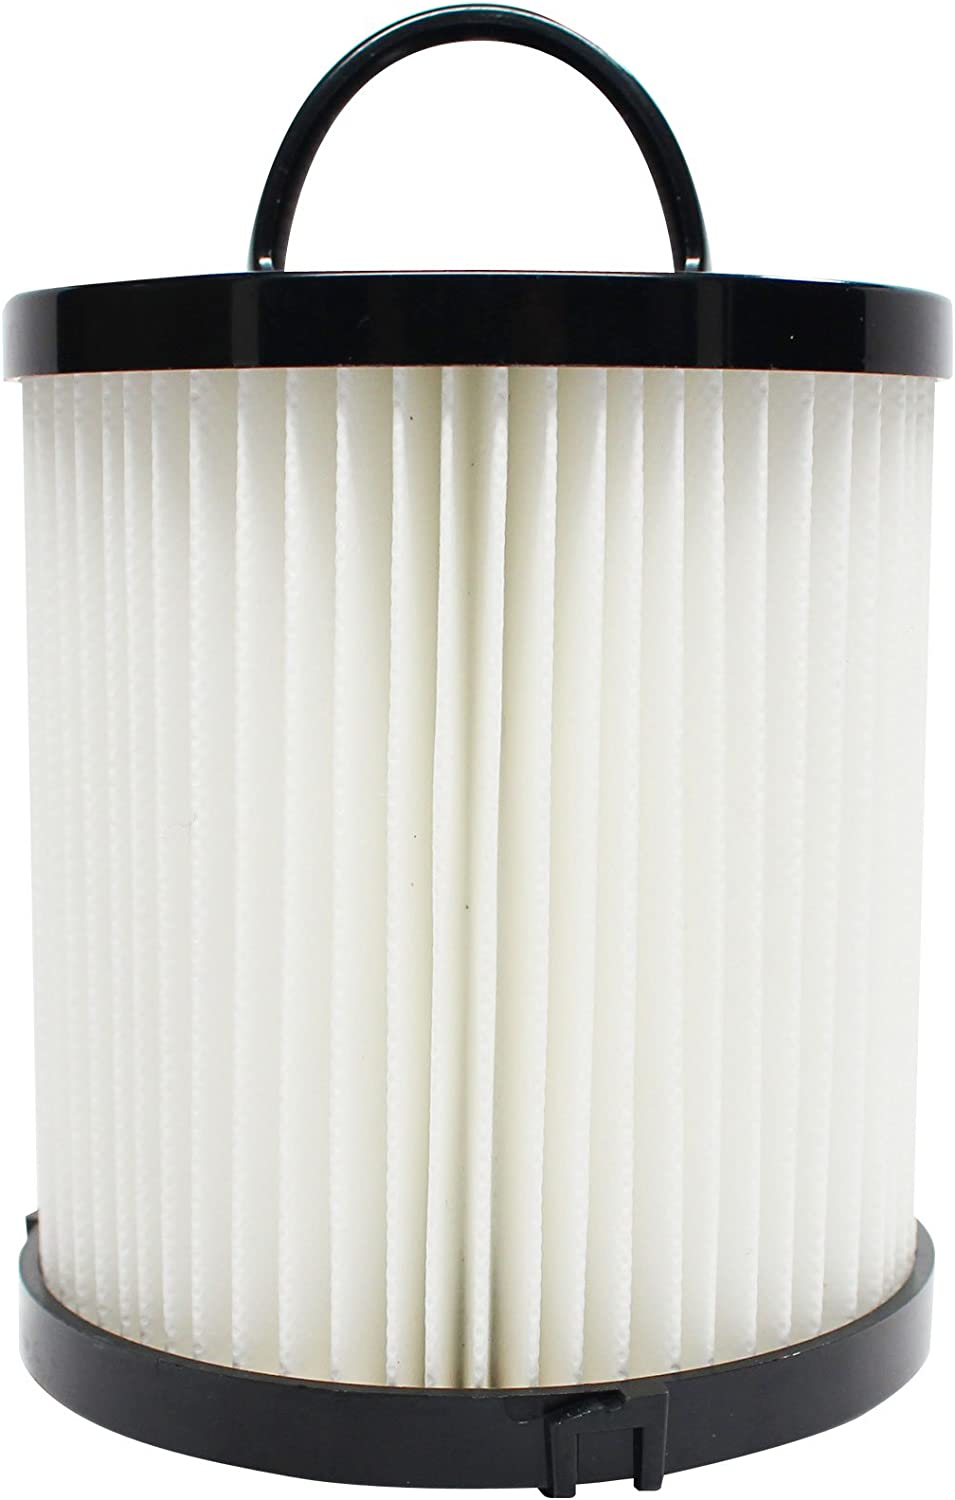 8-Pack Replacement DCF-21 Dust Cup Eureka 5☆好評 for デポー Compatibl - Filter